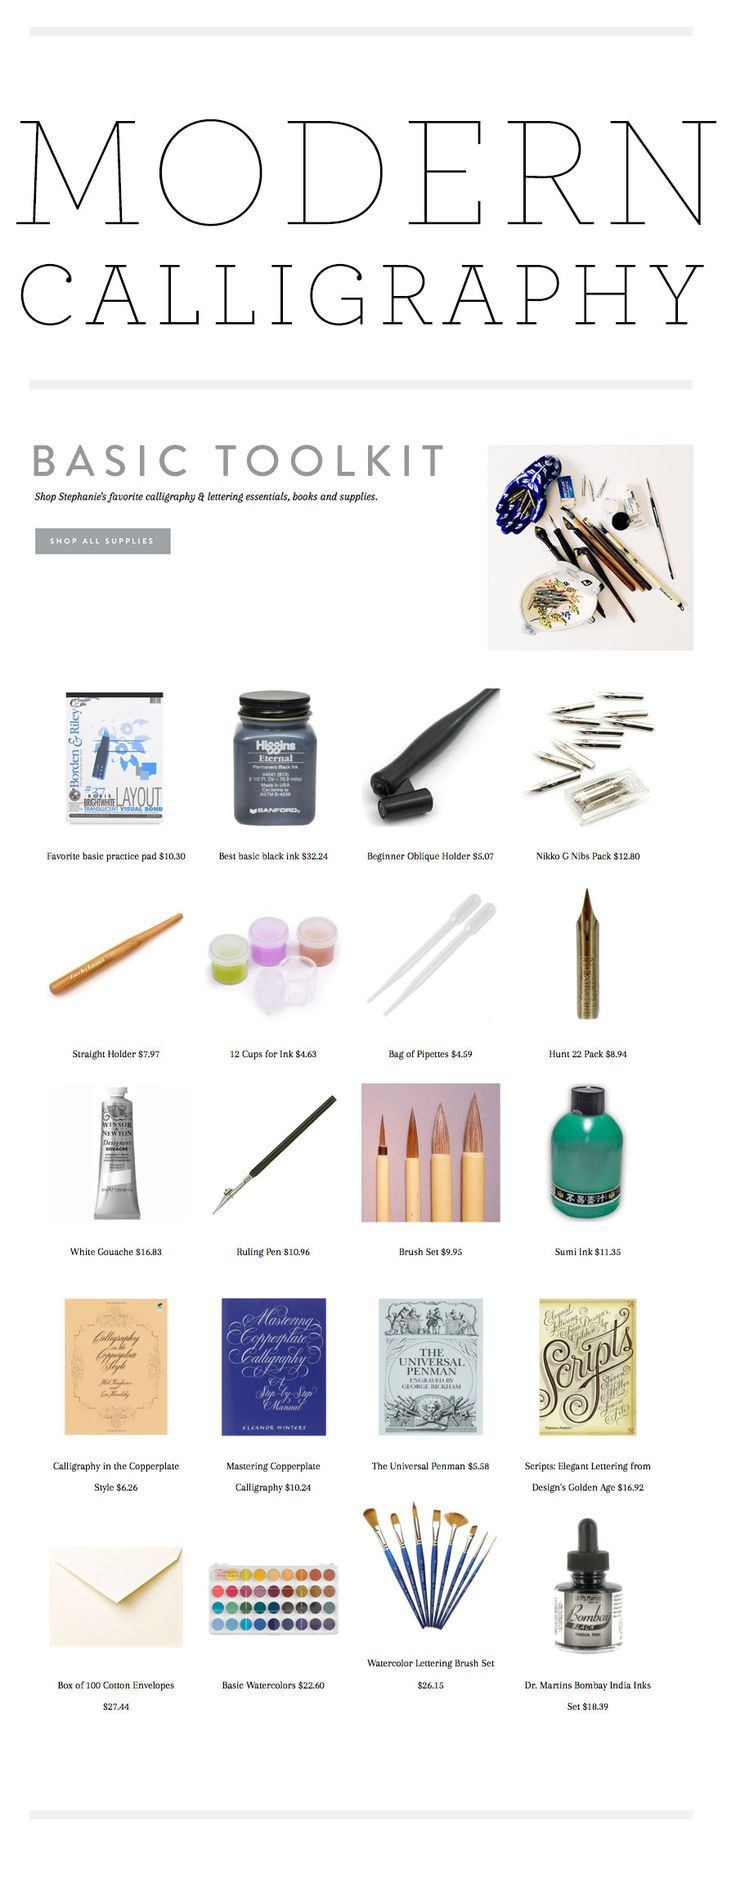 basic tool kits for calligraphy After many requests I have finally started adding my favorite calligraphy supplies and books into my shop! Today I am working on adding favorite alternative pens and tools for brush lettering too.